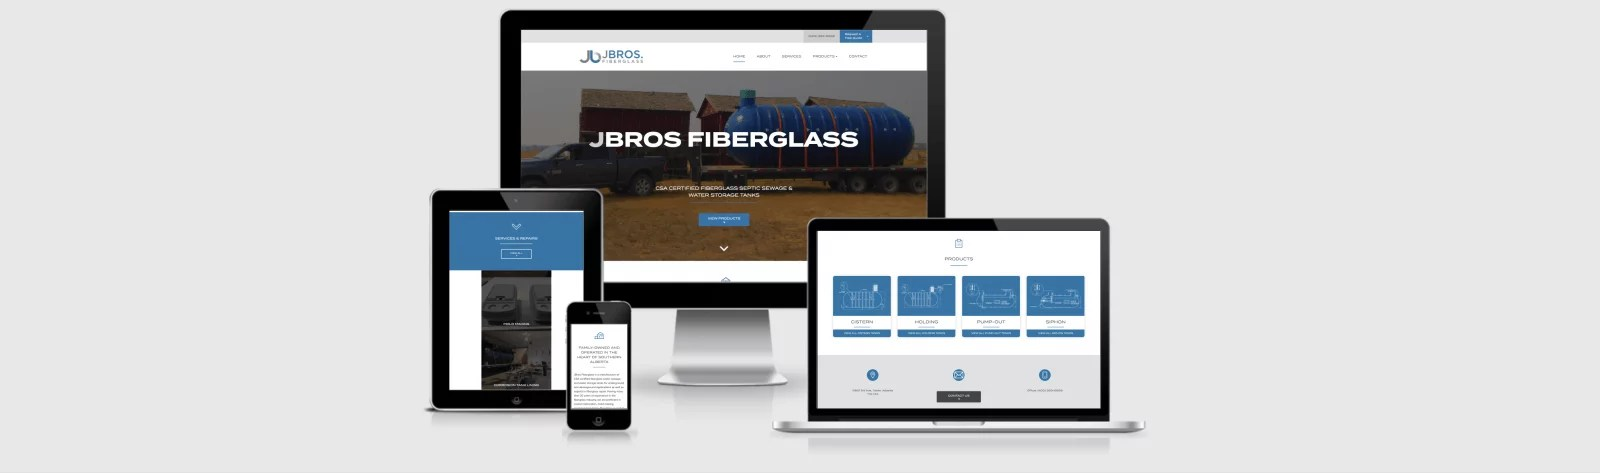 Web Design Markup for J Bros Fiberlgass by Artrageous Advertising